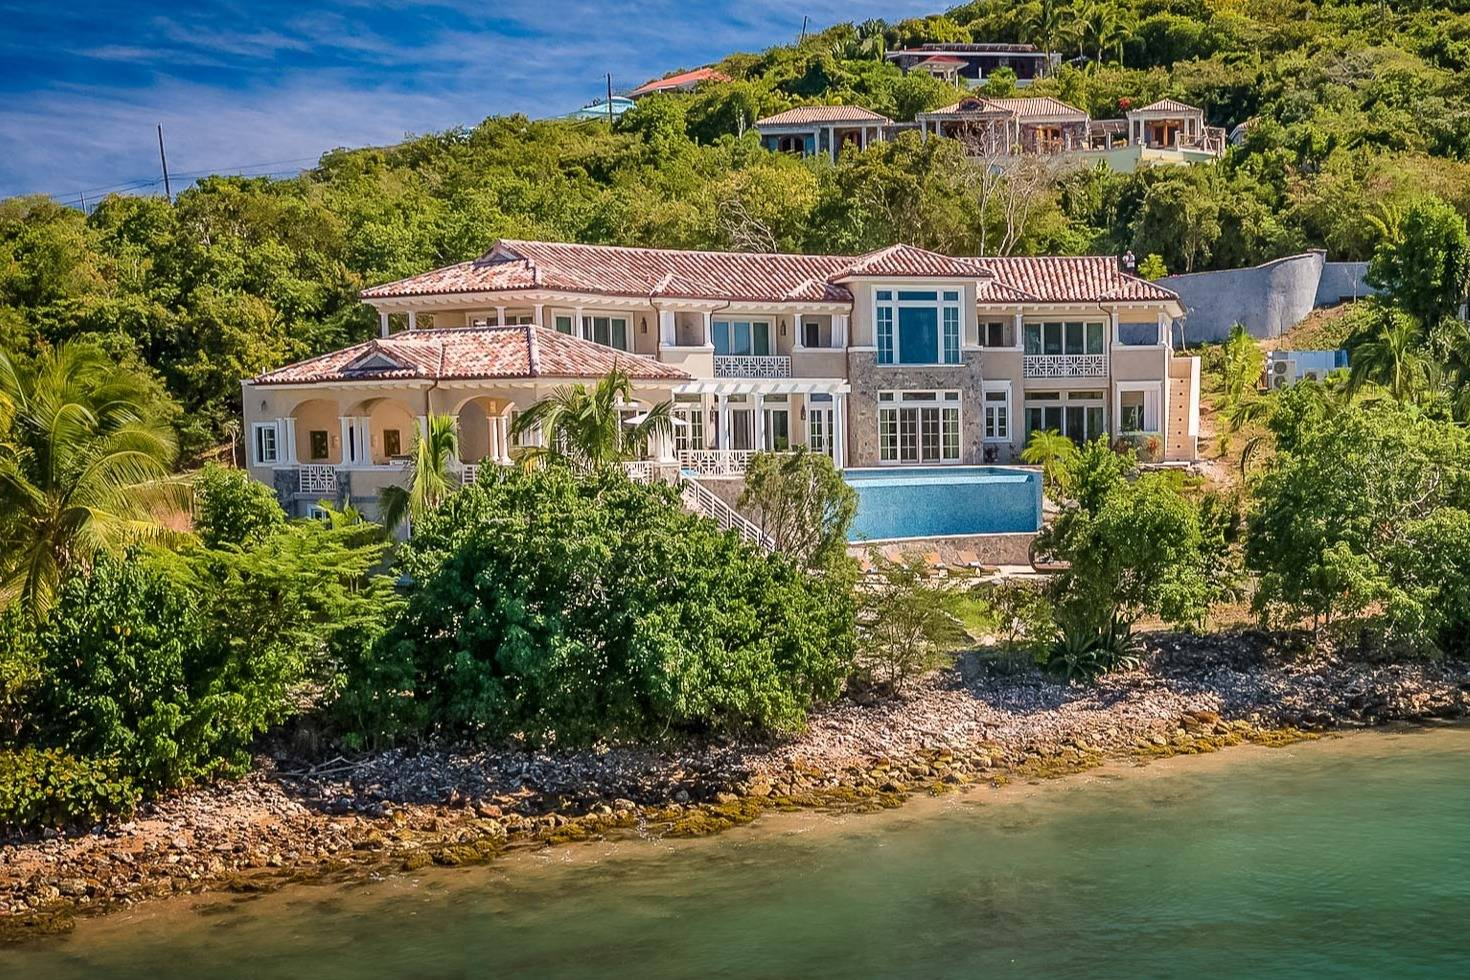 Cruz Bay, St. John has always enjoyed good food. Ready to try a Private Chef and open the door to a new world?, header